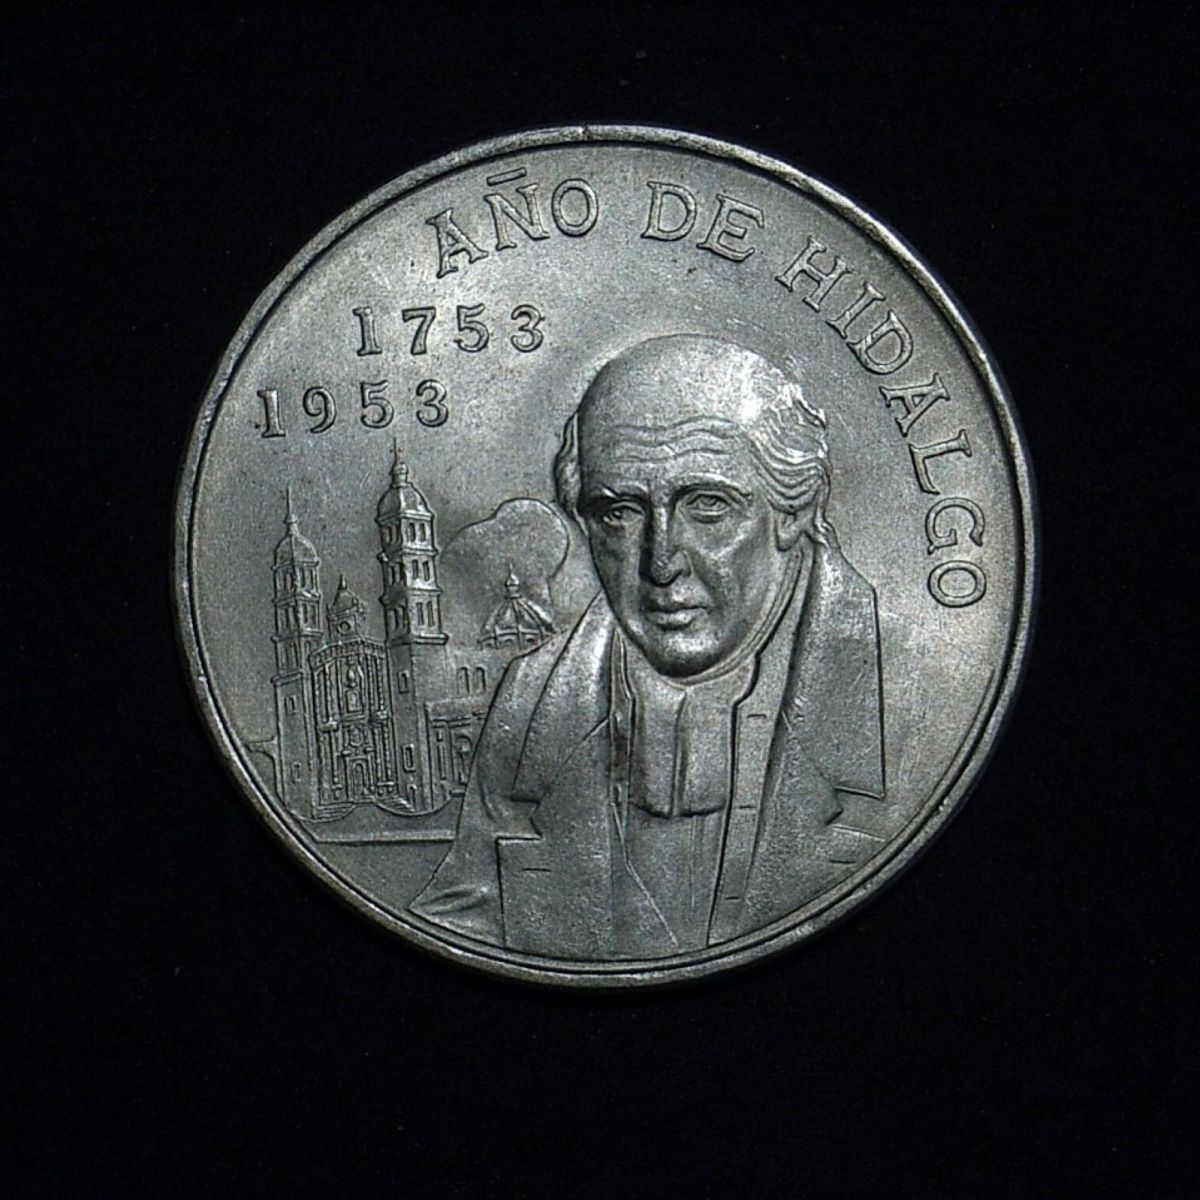 1953 Mexican 5 peso obverse highlighting the coin's lustre